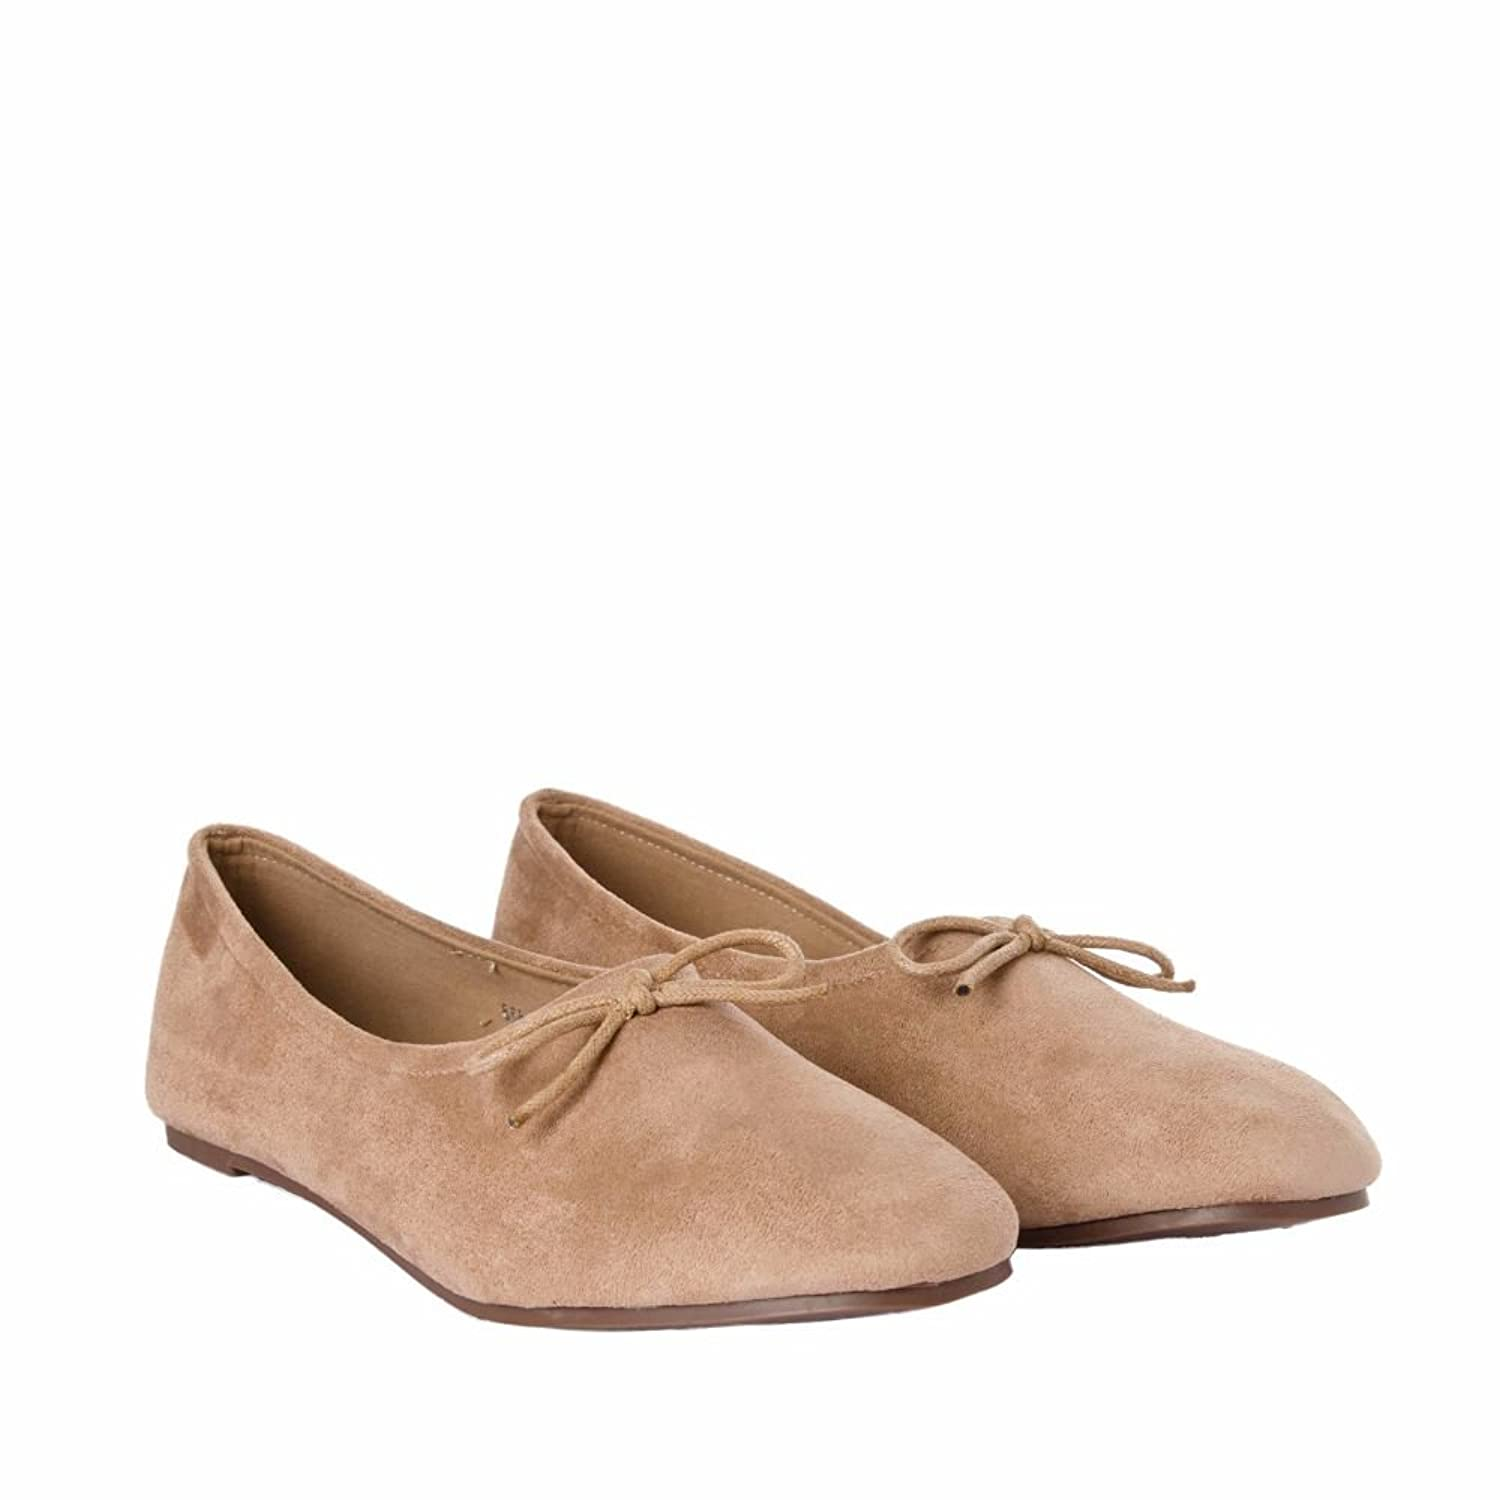 Joker & Witch Simple suede Nude shoes for Women and Girls …